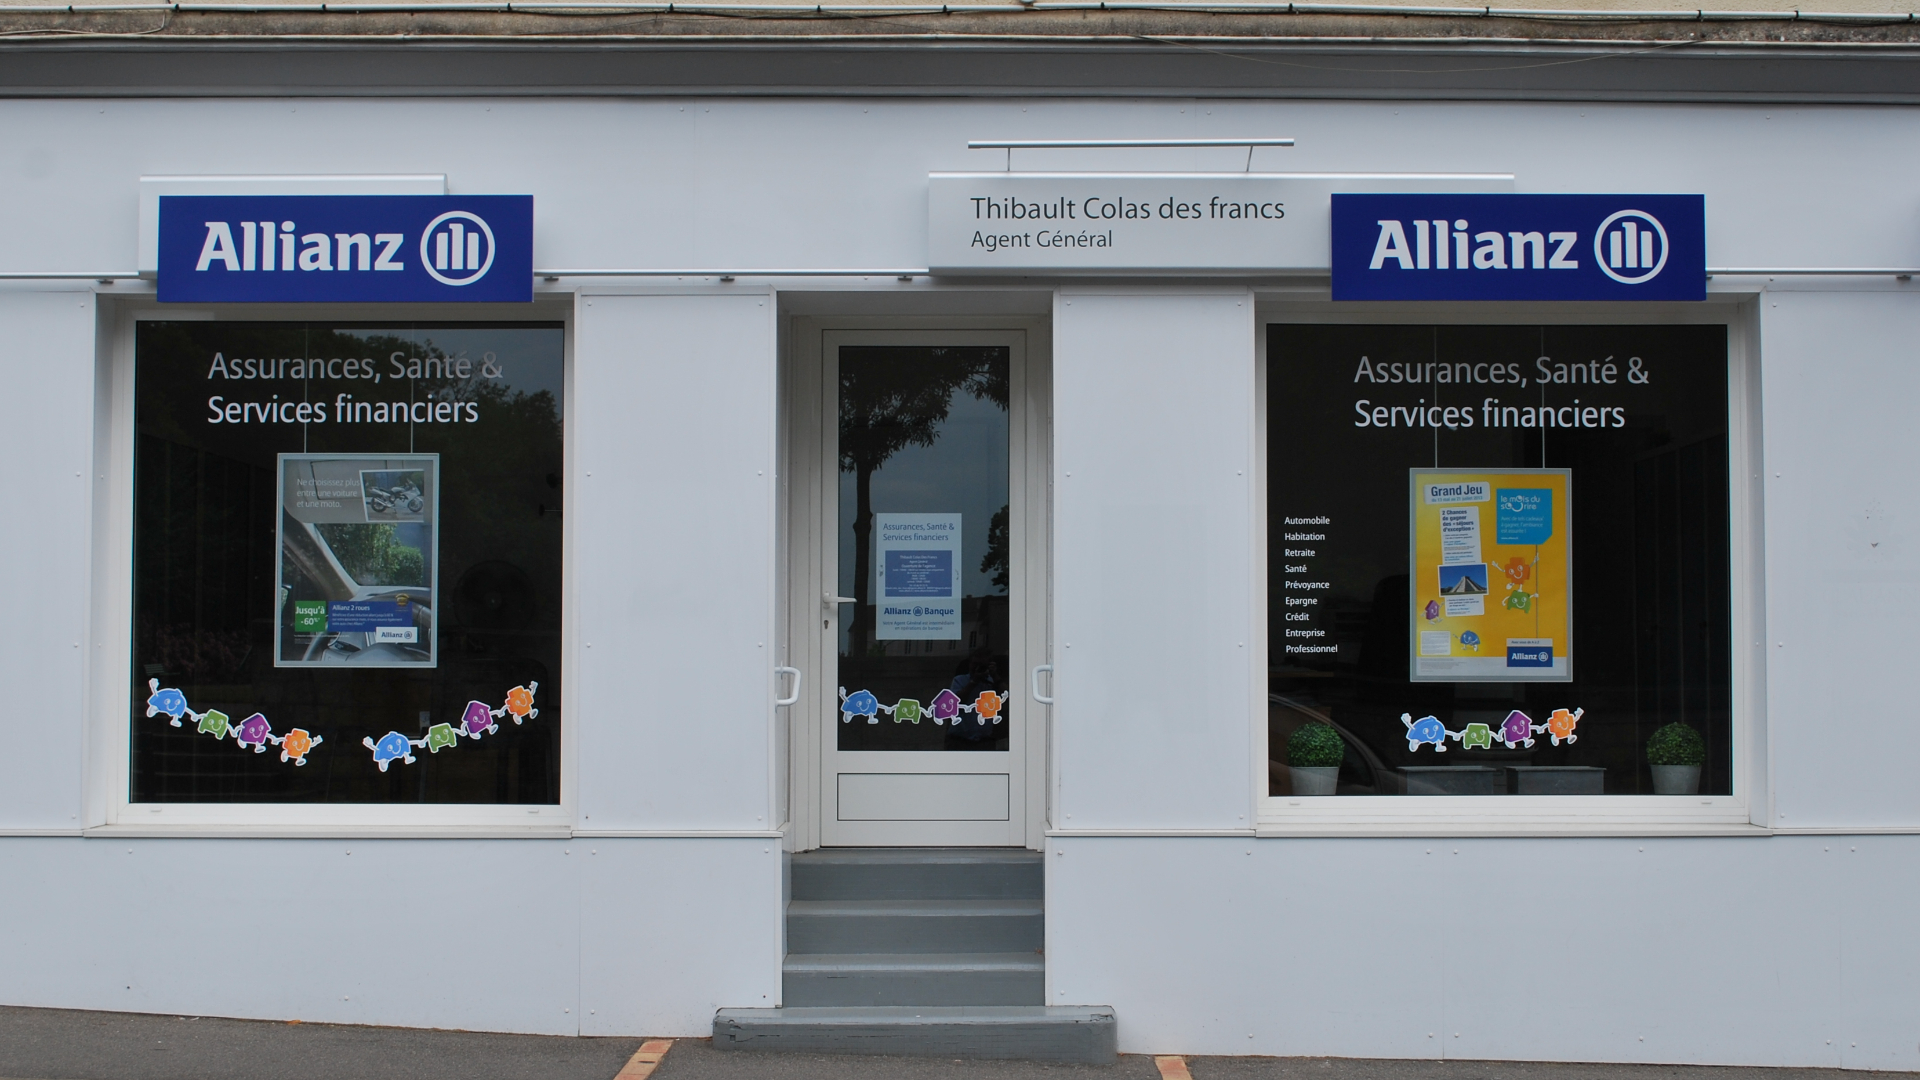 Allianz Nevers hoche - Thibault COLAS DES FRANCS